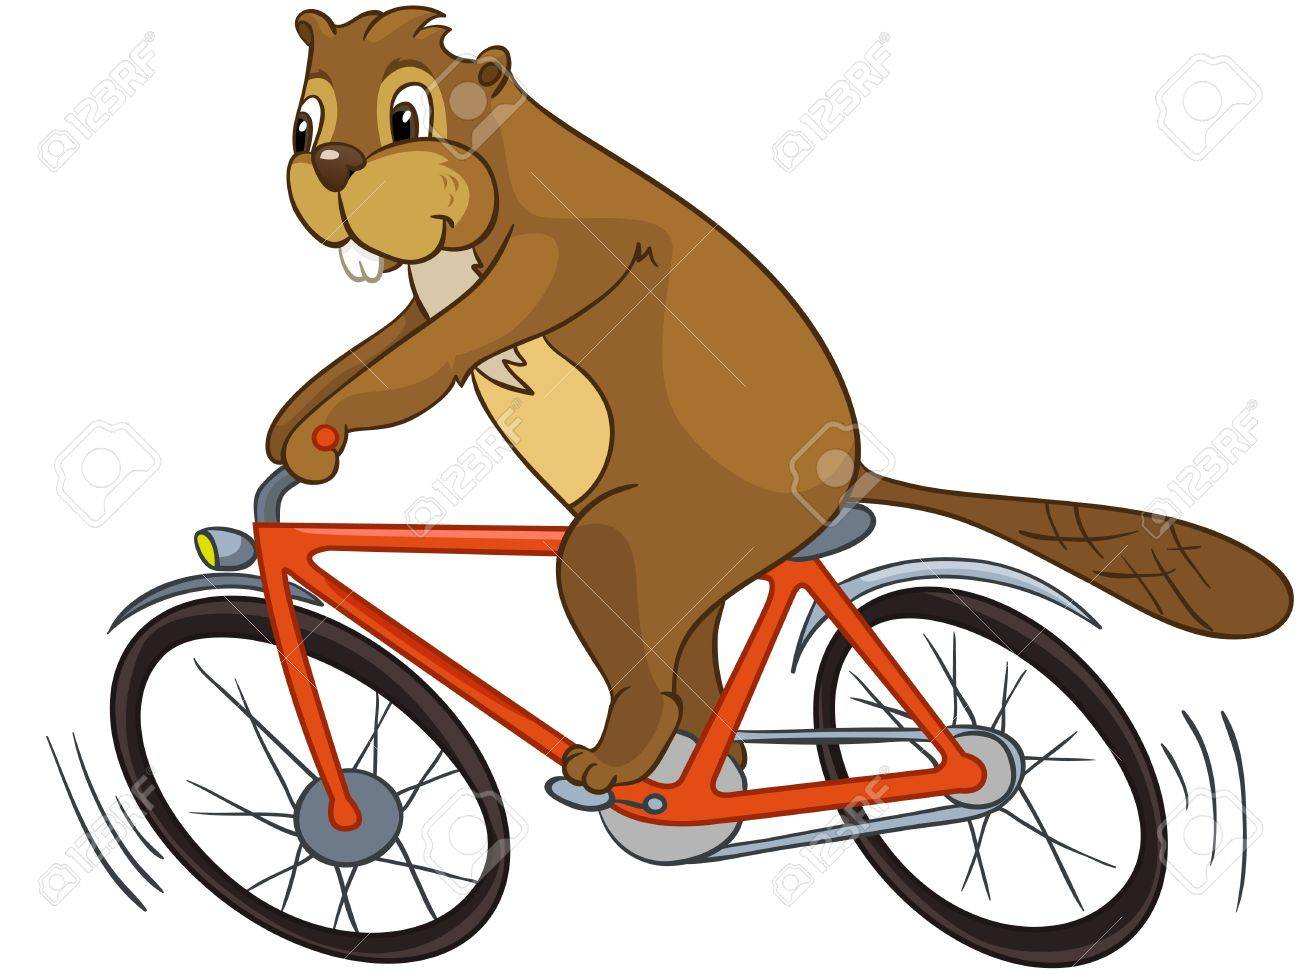 Beaver CREES Stock Vector - 13051352